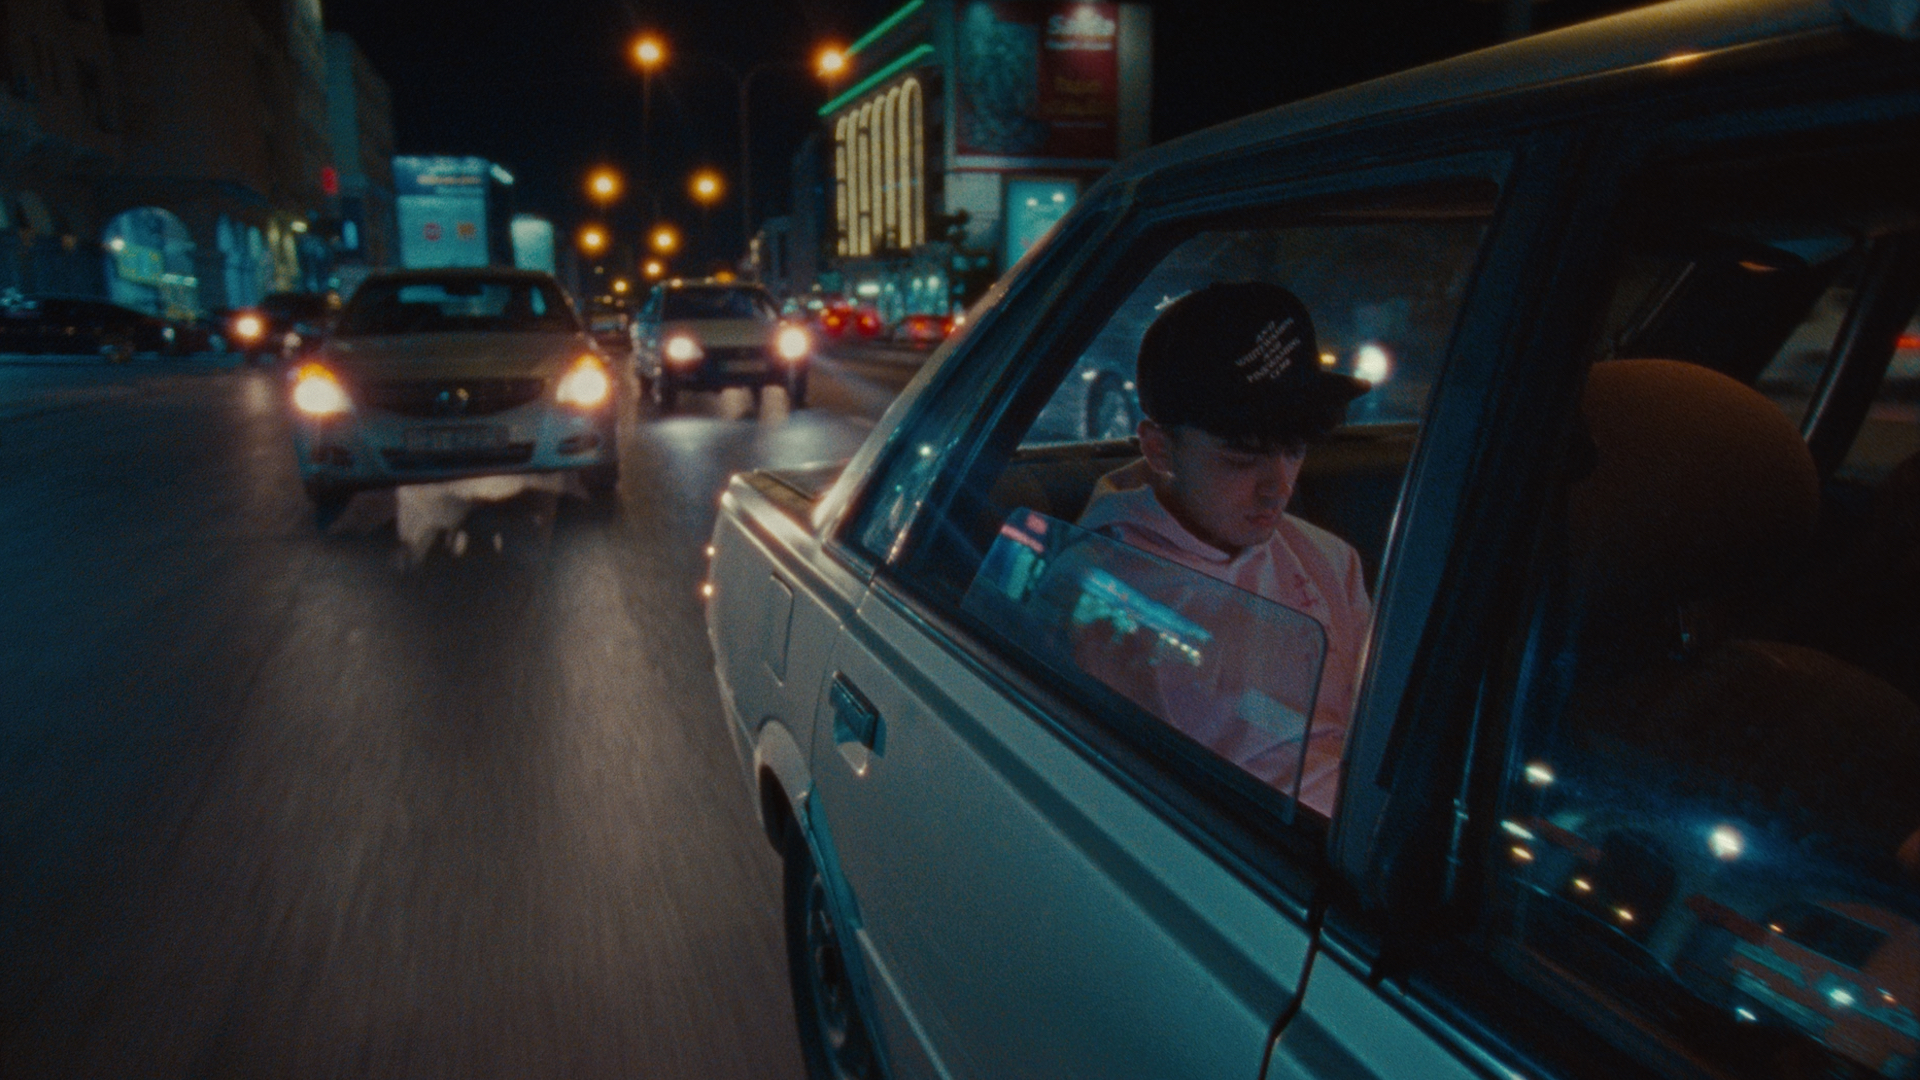 A young man sits in the back seat of a car with the window open, he wears a black cap and pink hooded sweatshirt. The car is driving down a busy street at night. Other cars follow behind with their lights on. Lit up buildings and streetlights overhead can be seen behind the car.